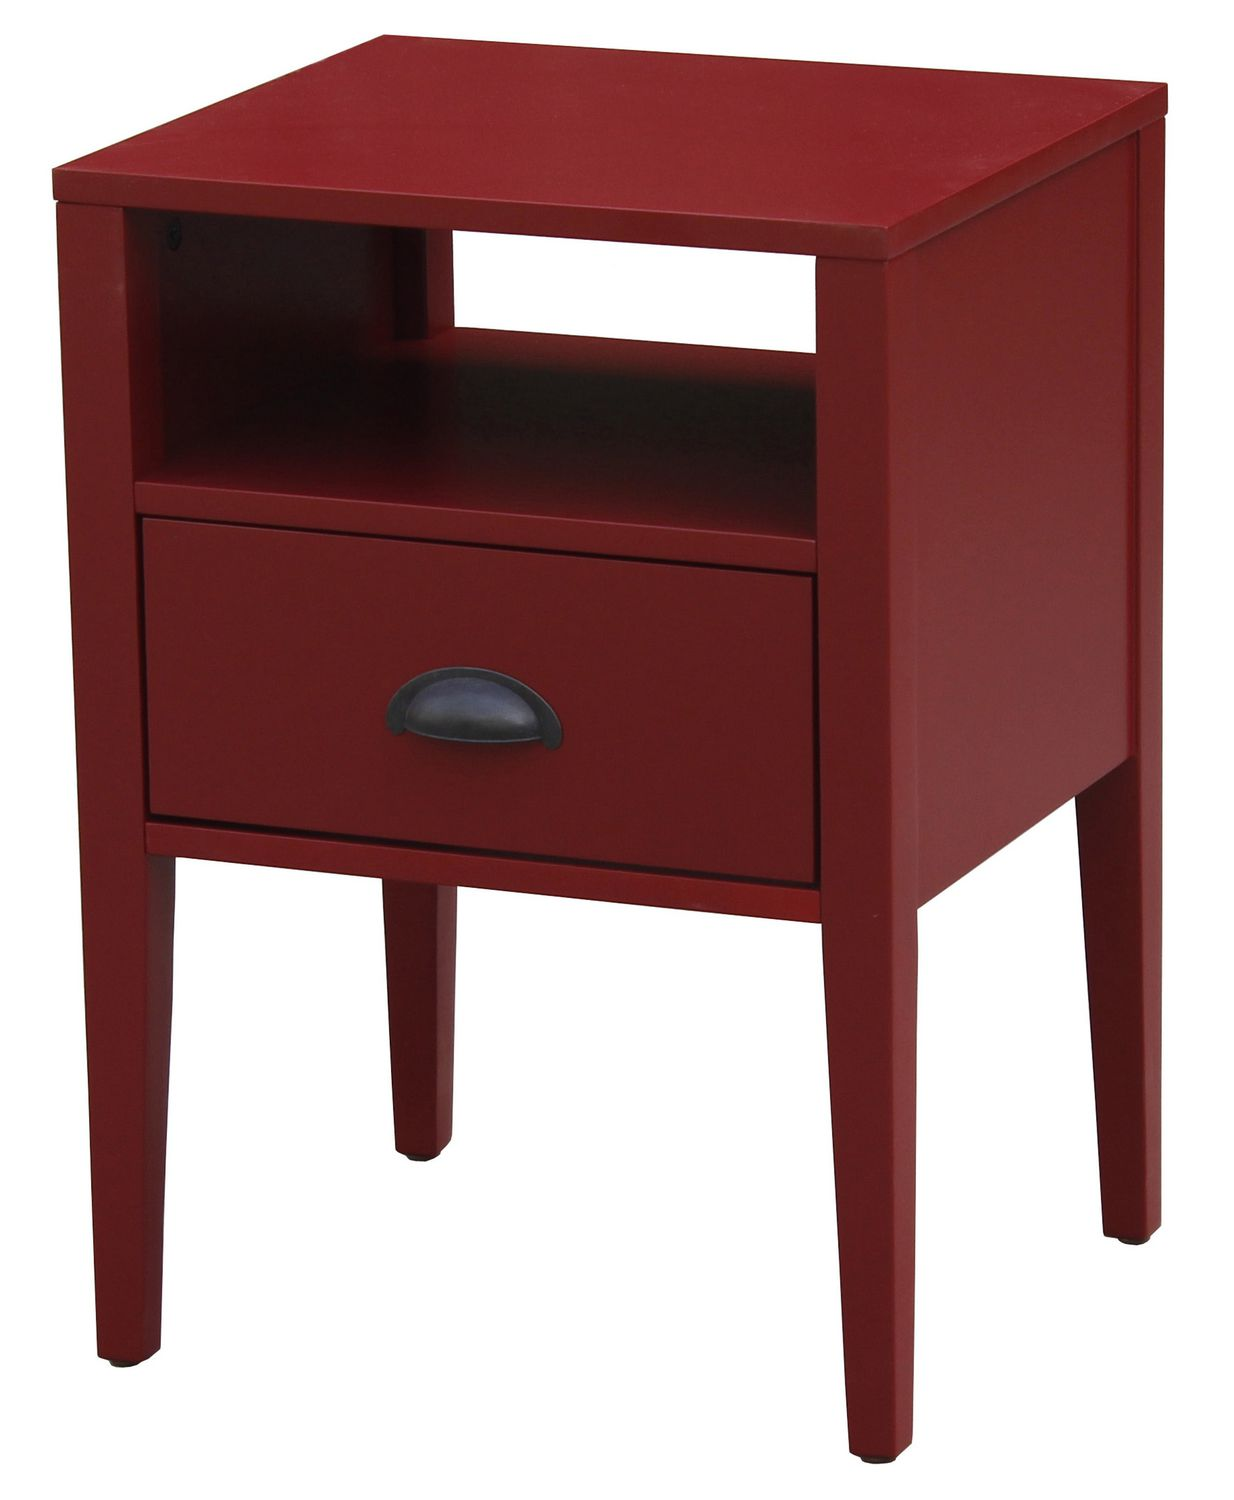 . Hometrends Accent Table   Walmart Canada